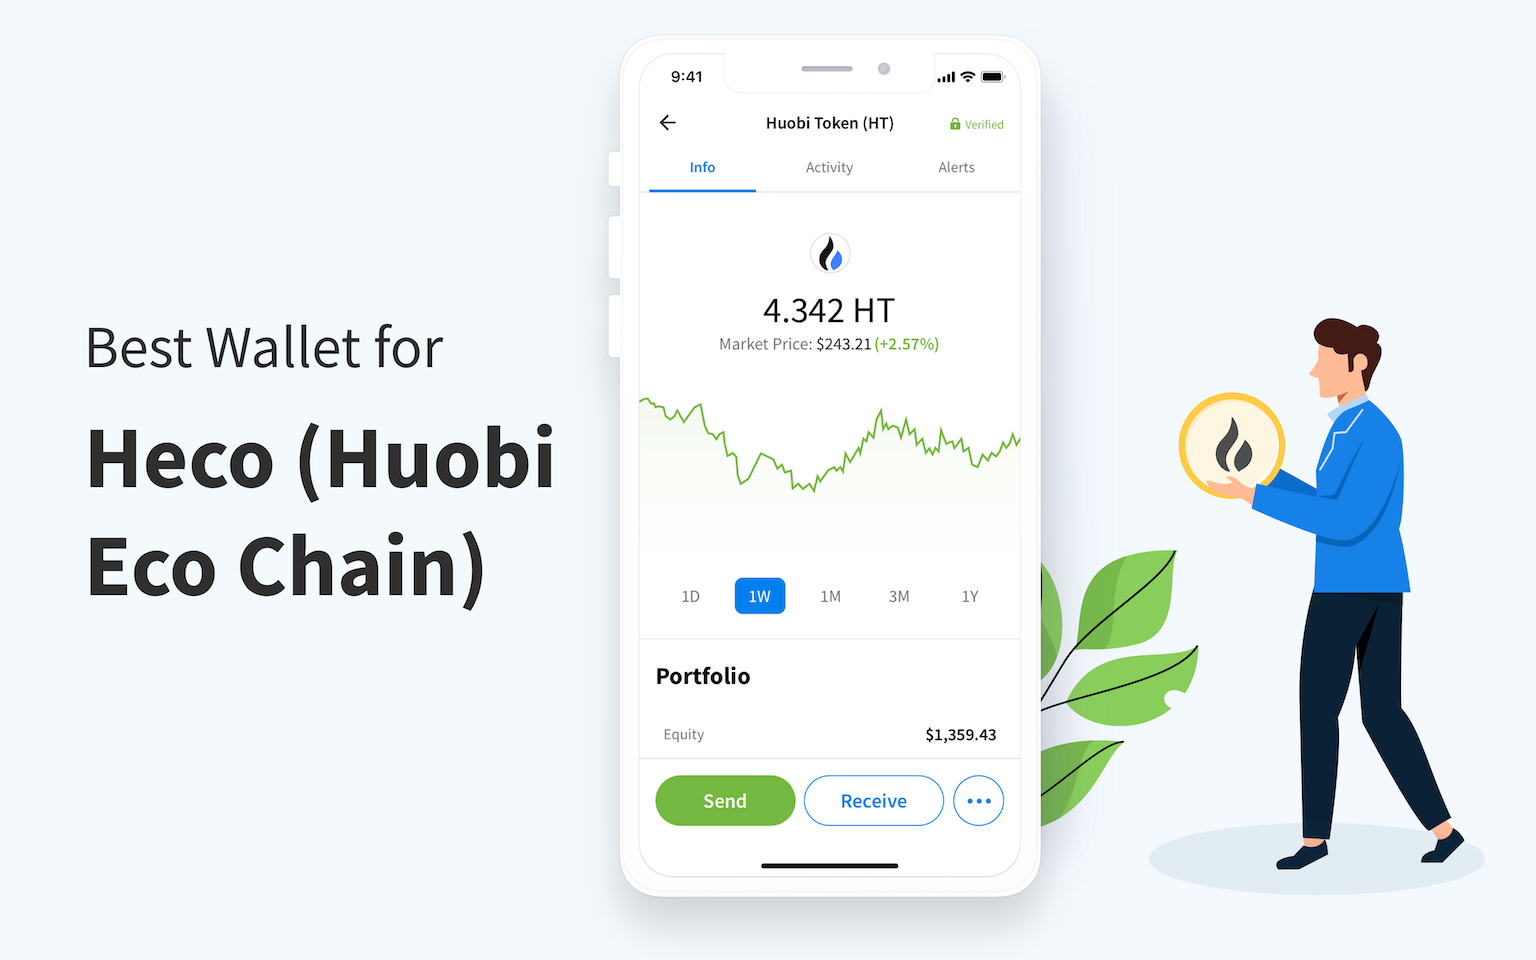 The Best Wallet for Heco (Huobi Eco Chain)